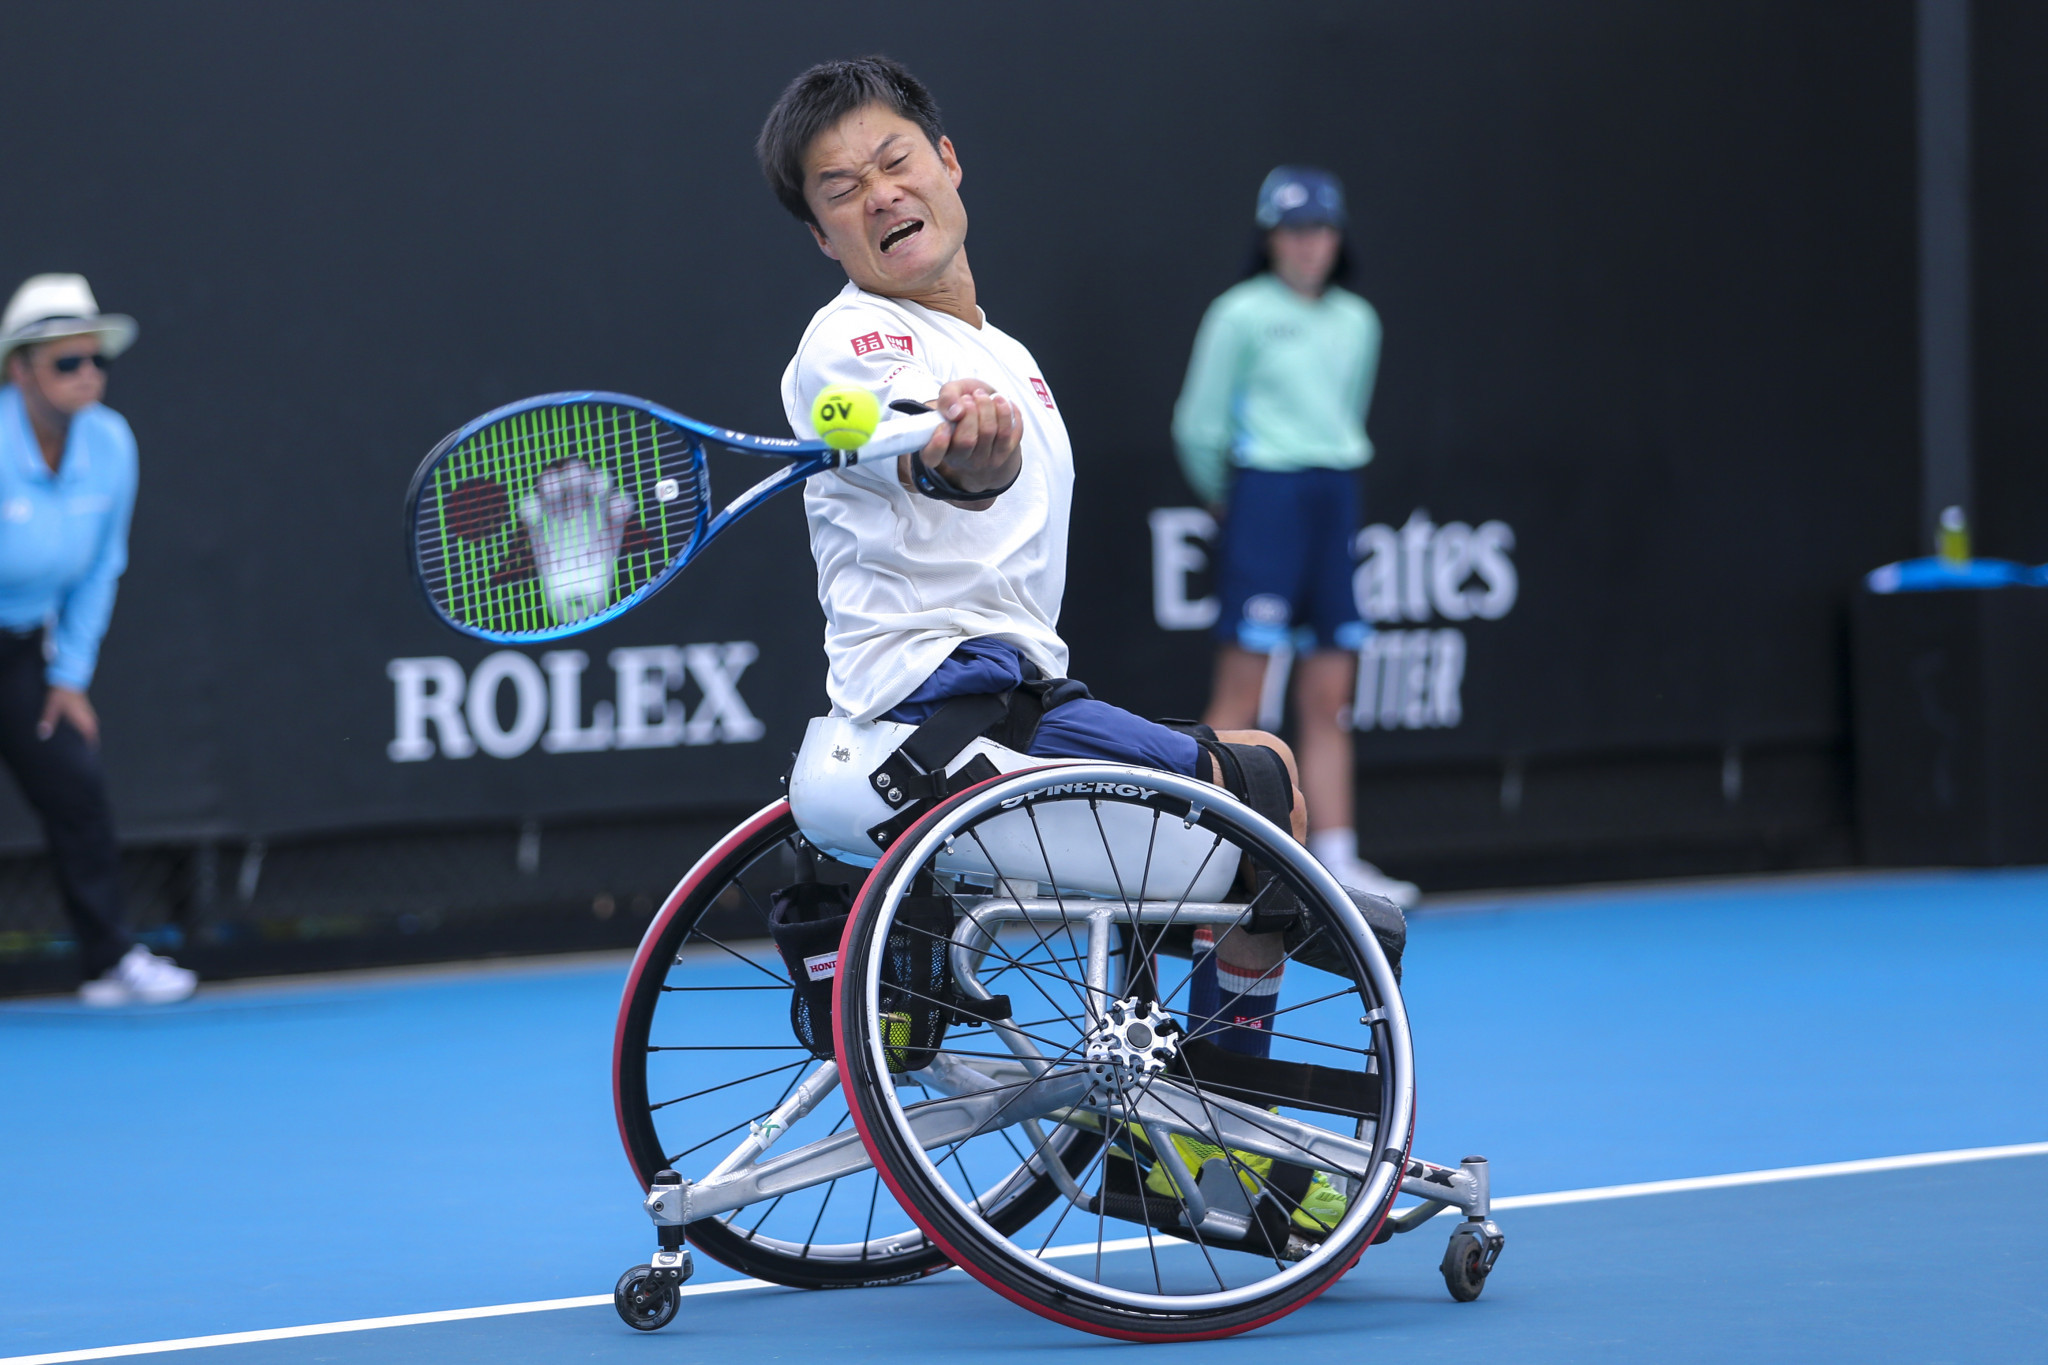 Kunieda nominated for IPC athlete of the month award after Australian Open win